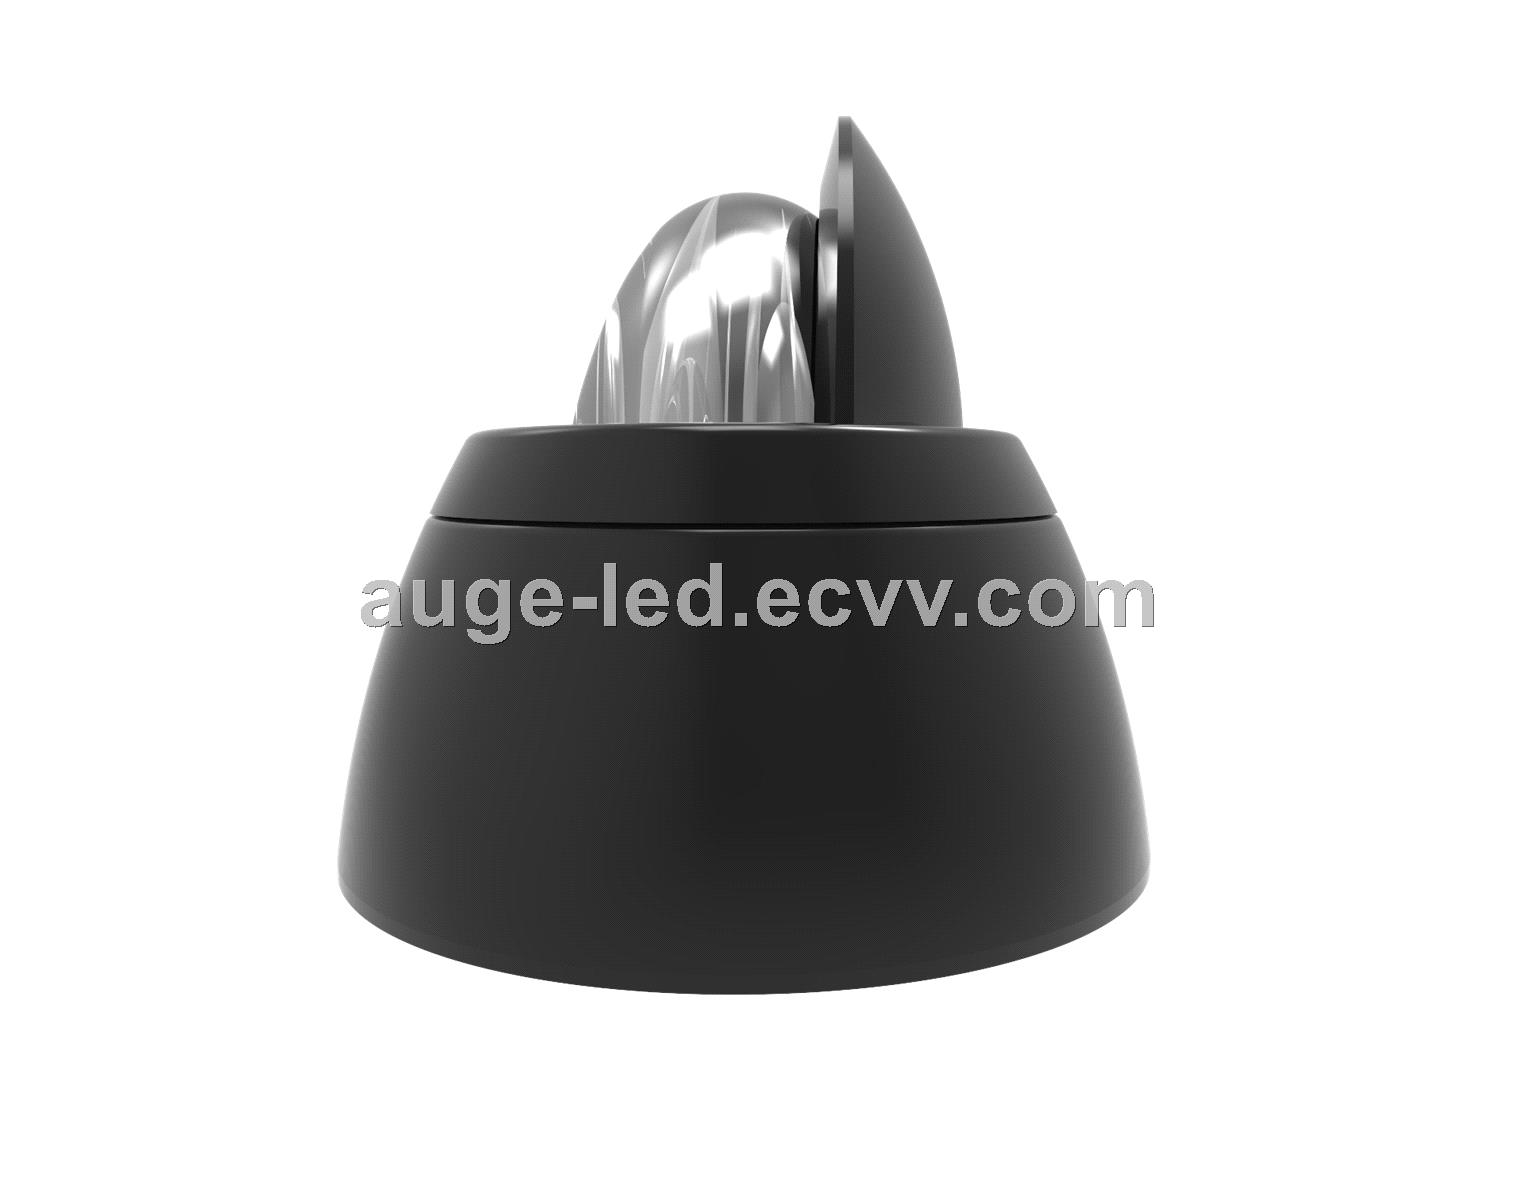 LED Wall Washer Lamp 10W/15W 2700-6500K/RGBW, Small Wall Washer Light Landscape/Garden/Architecture Lighting Asymmetric